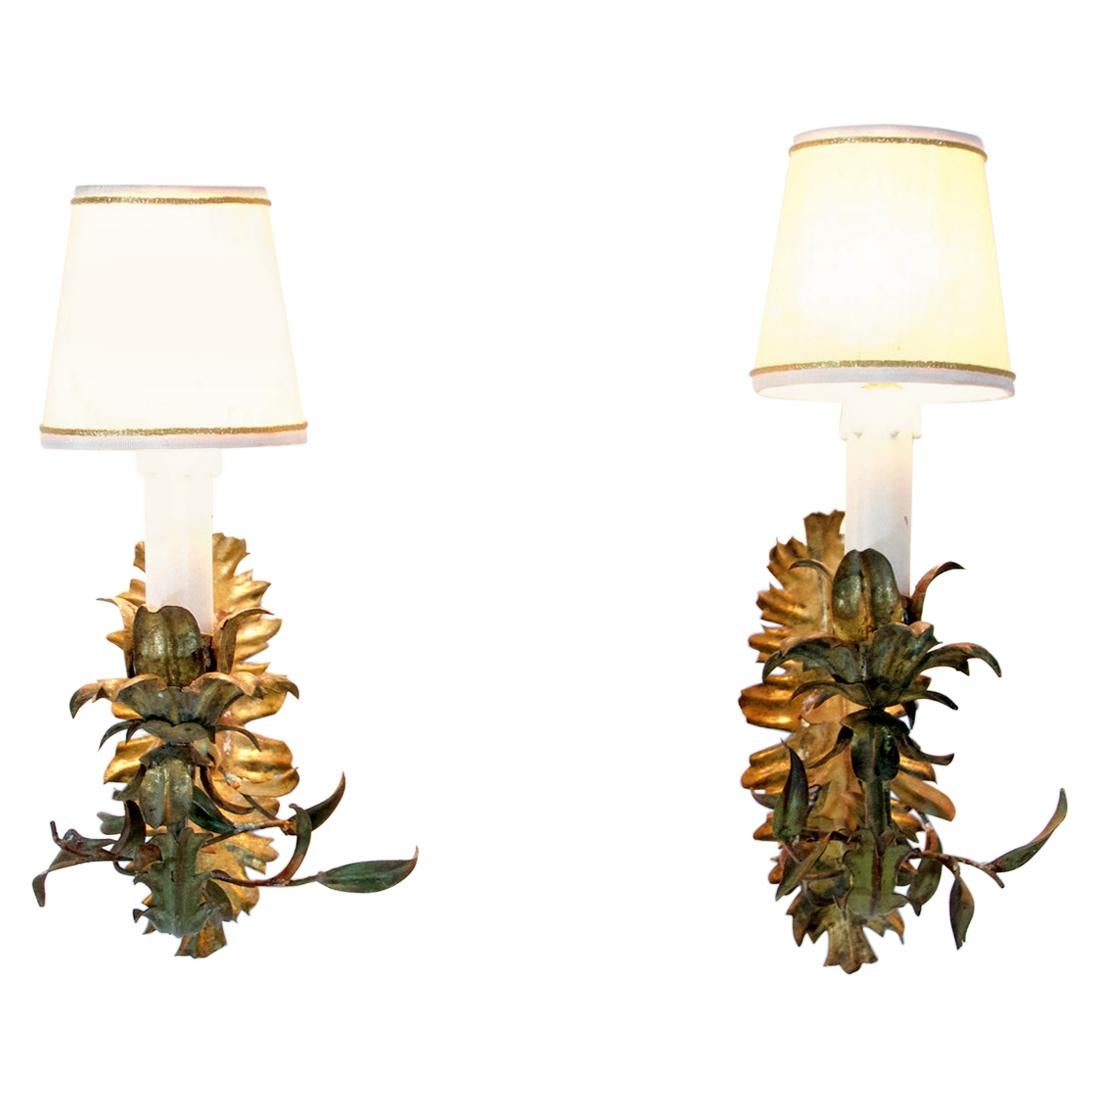 Pair of Italian Tole Wall Sconces, circa 1950